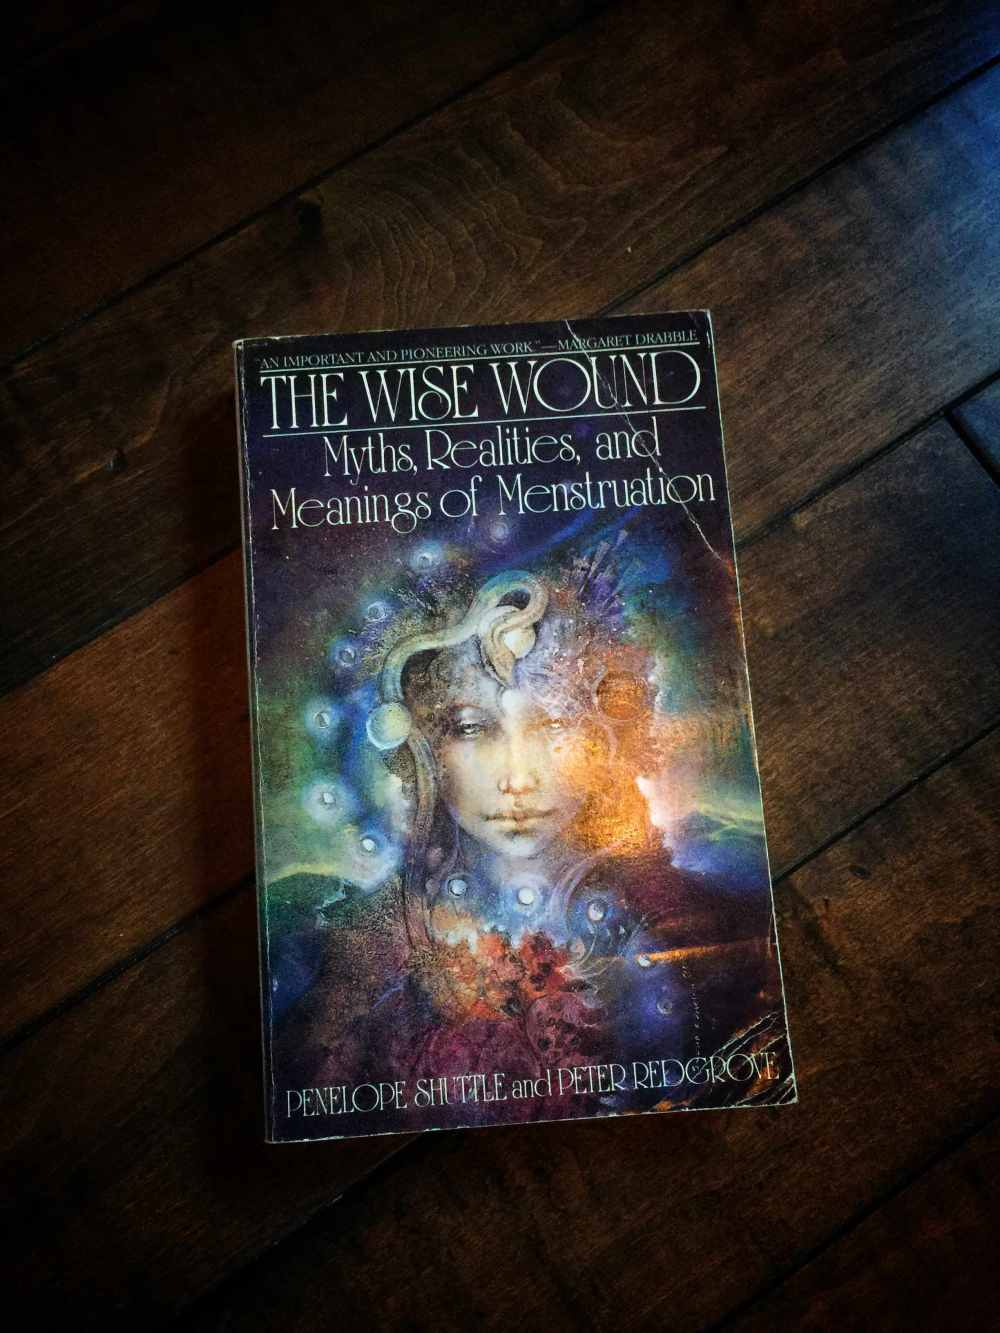 Wise Wound: The Myths, Realities, and Meanings of Menstruation